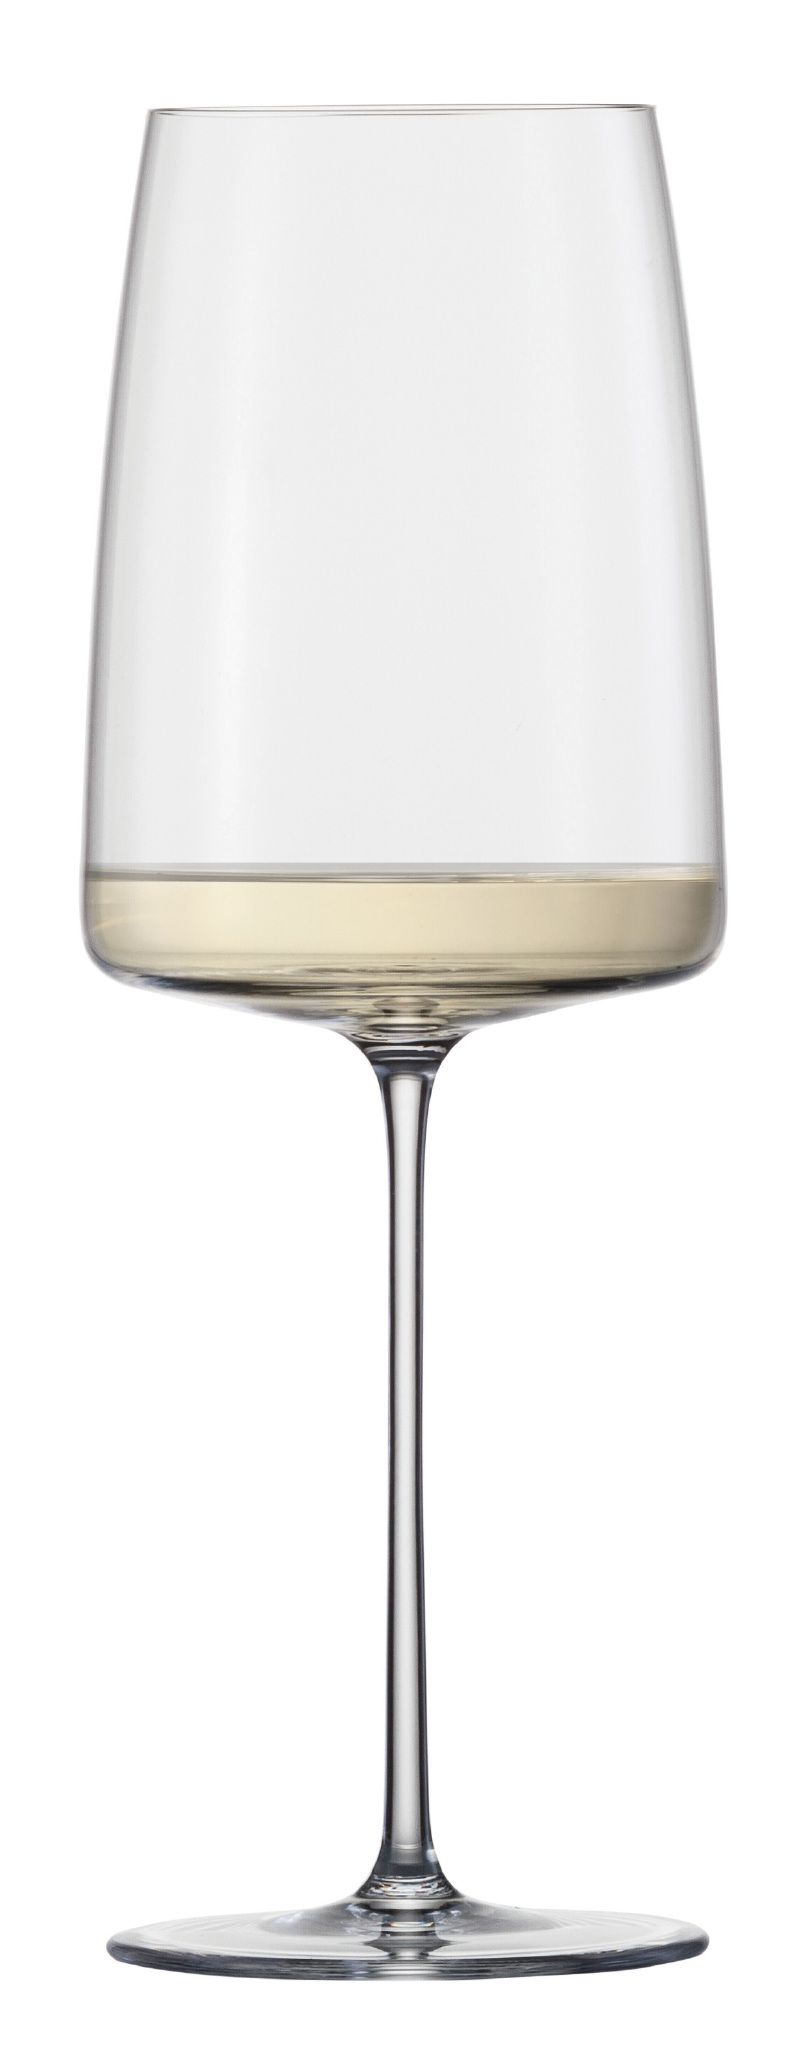 Zwiesel 1872 Simplify wijnglas Light & Fresh 38cl